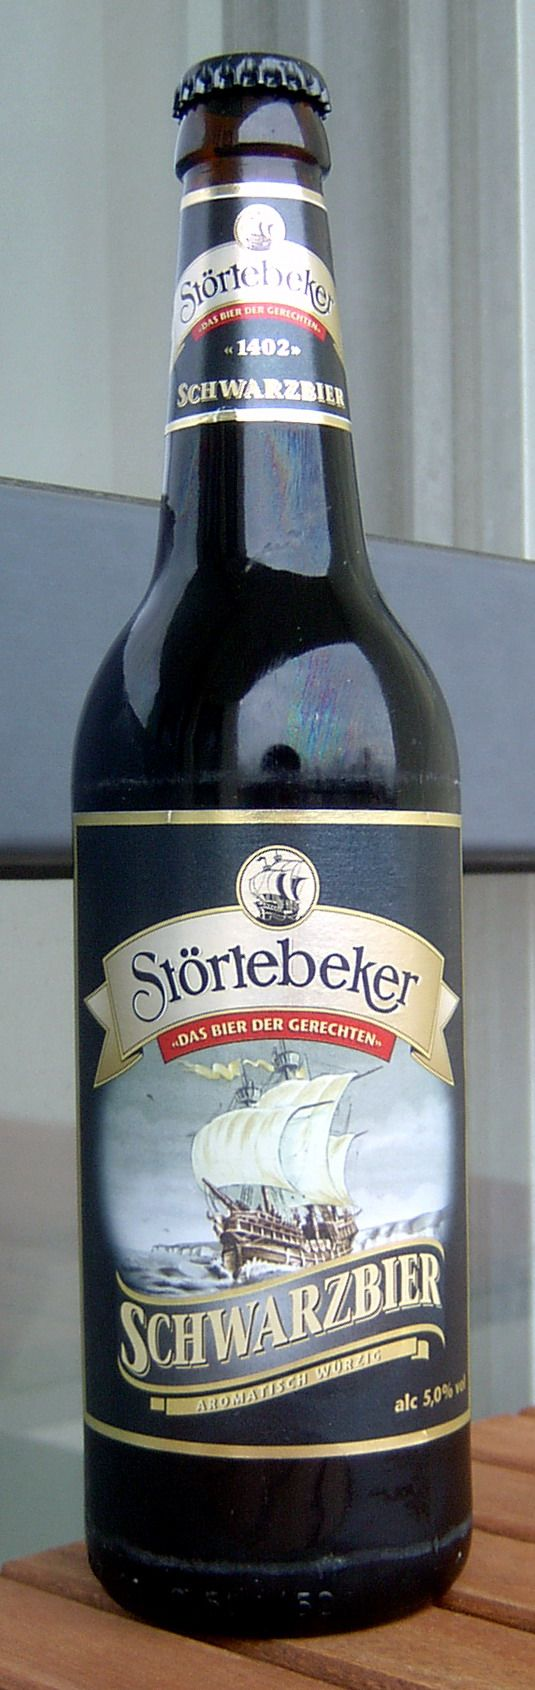 "This is my favorite German beer. Named after the pirate Klaus Störtebeker, a german Robin Hood of the North Sea, this beer not only tastes awesome but has a great story. This is a Schwarzbier ""black beer""."